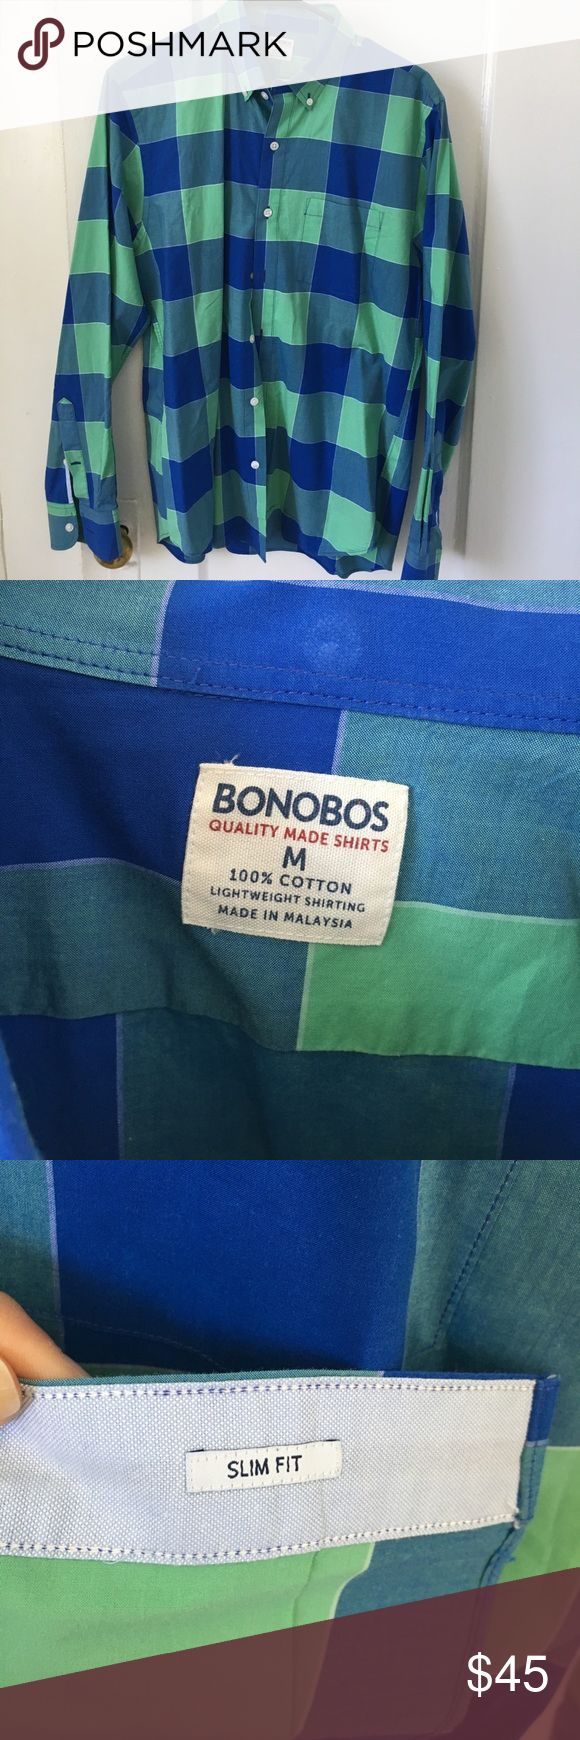 Bonobos lightweight casual button down size M Bonobos lightweight casual button down size M. Non smoking home with no pets. Worn about 3 times.  Open to offers. No trades. Bonobos Shirts Casual Button Down Shirts